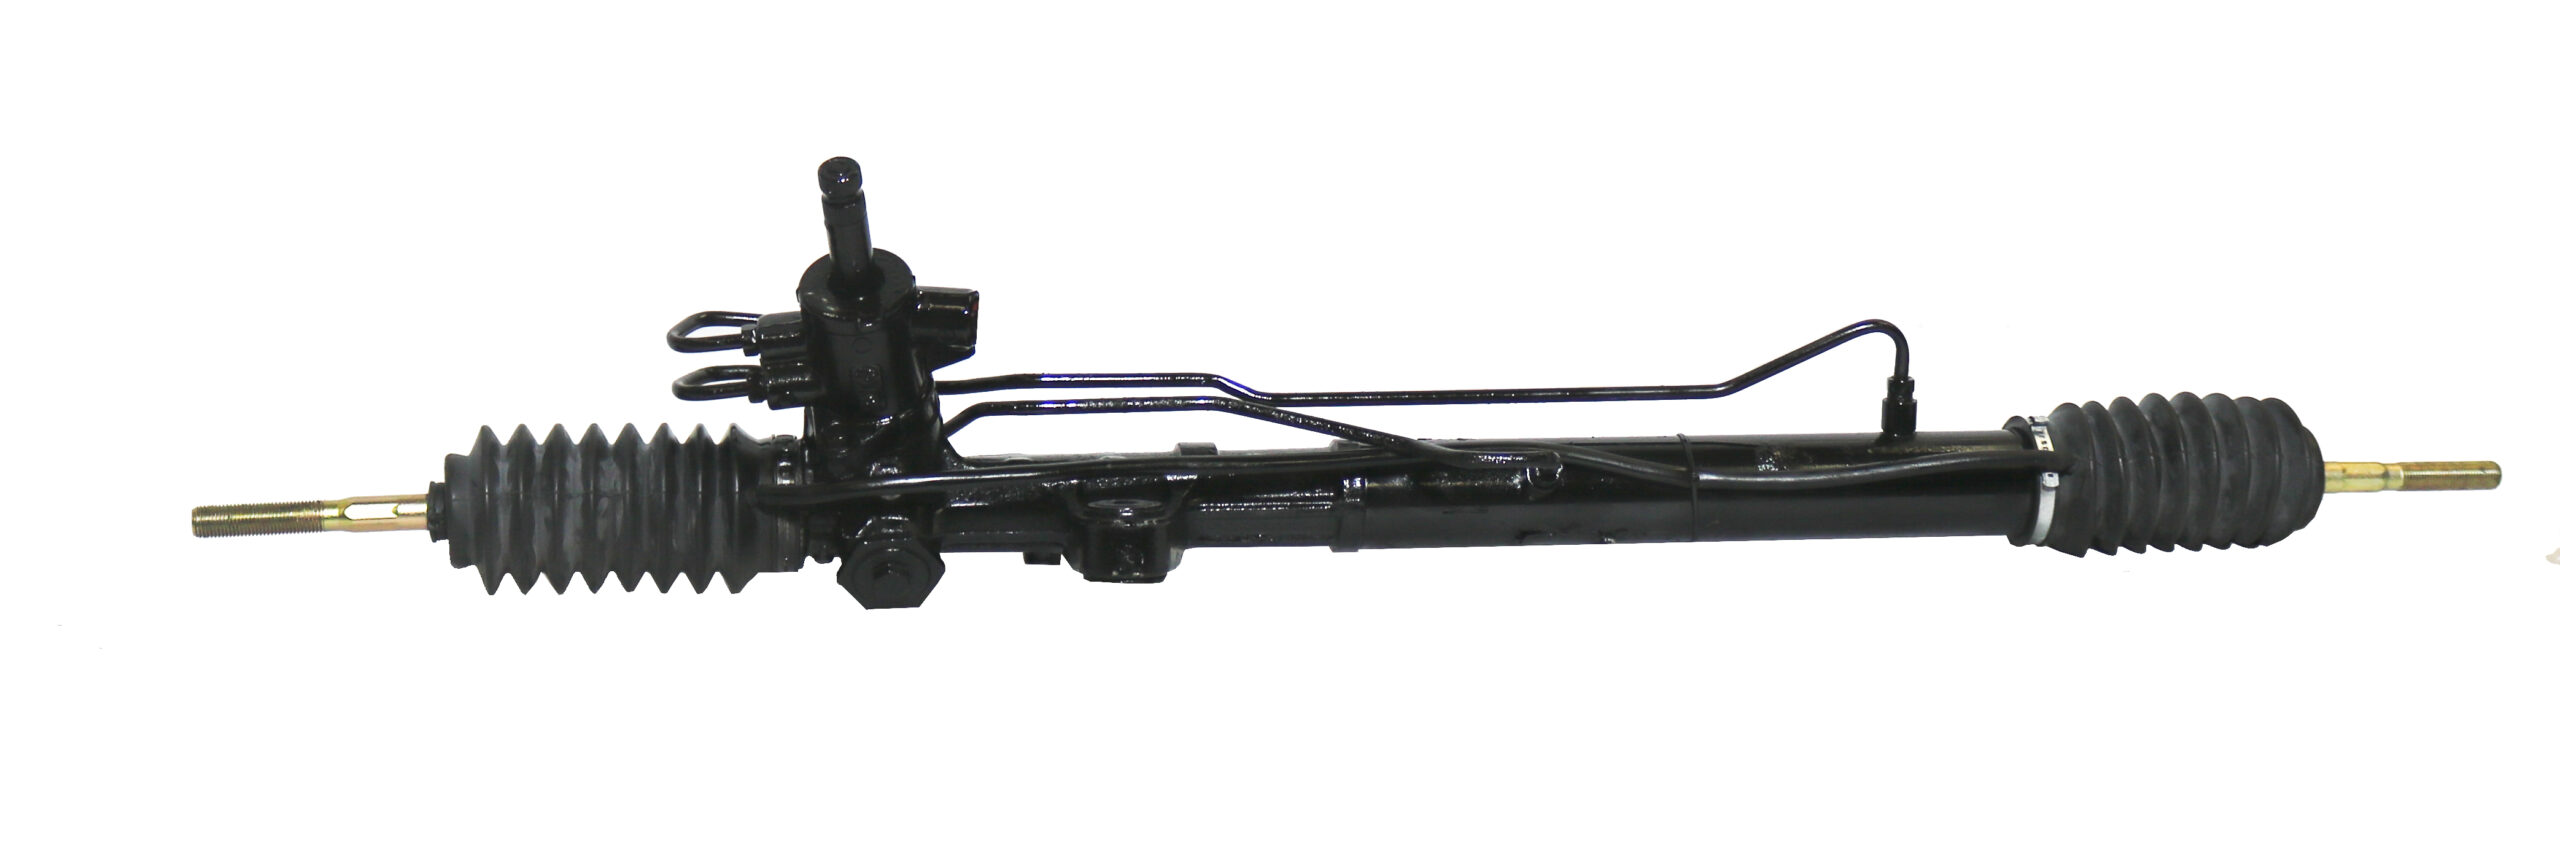 Acura CL hydrolic power steering rack and pinion gear.